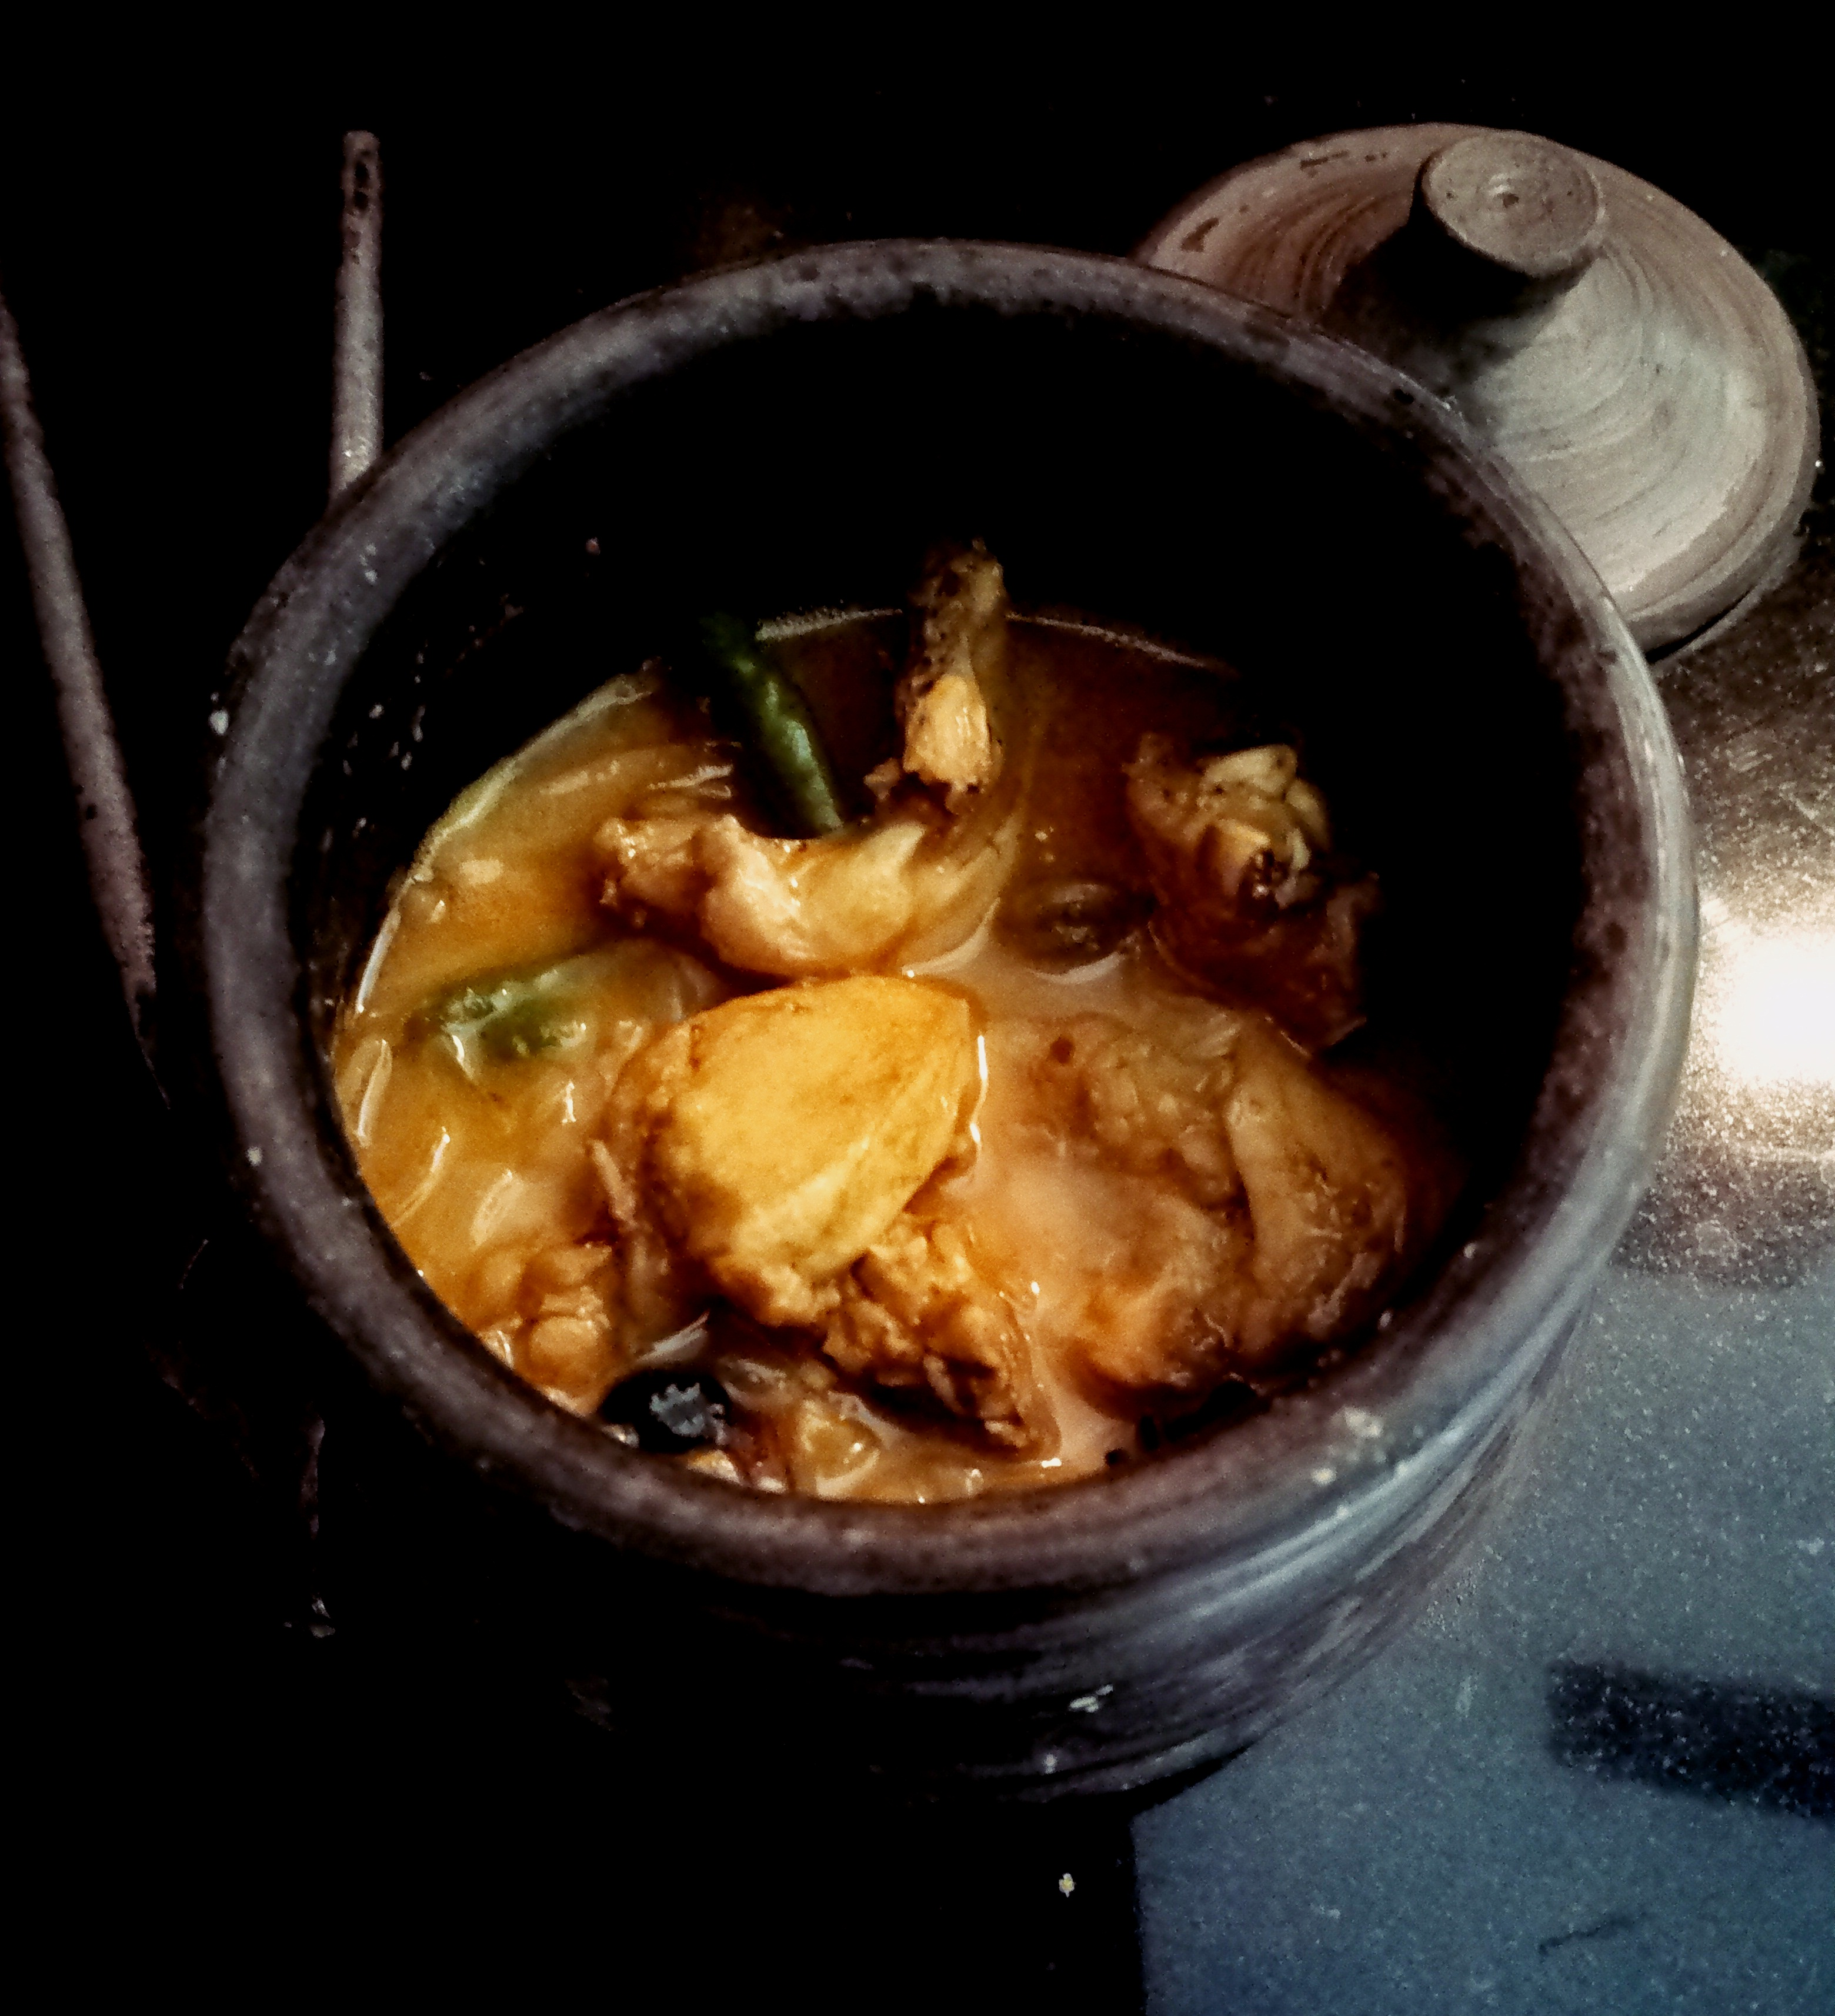 Cooking chicken in a clay pot